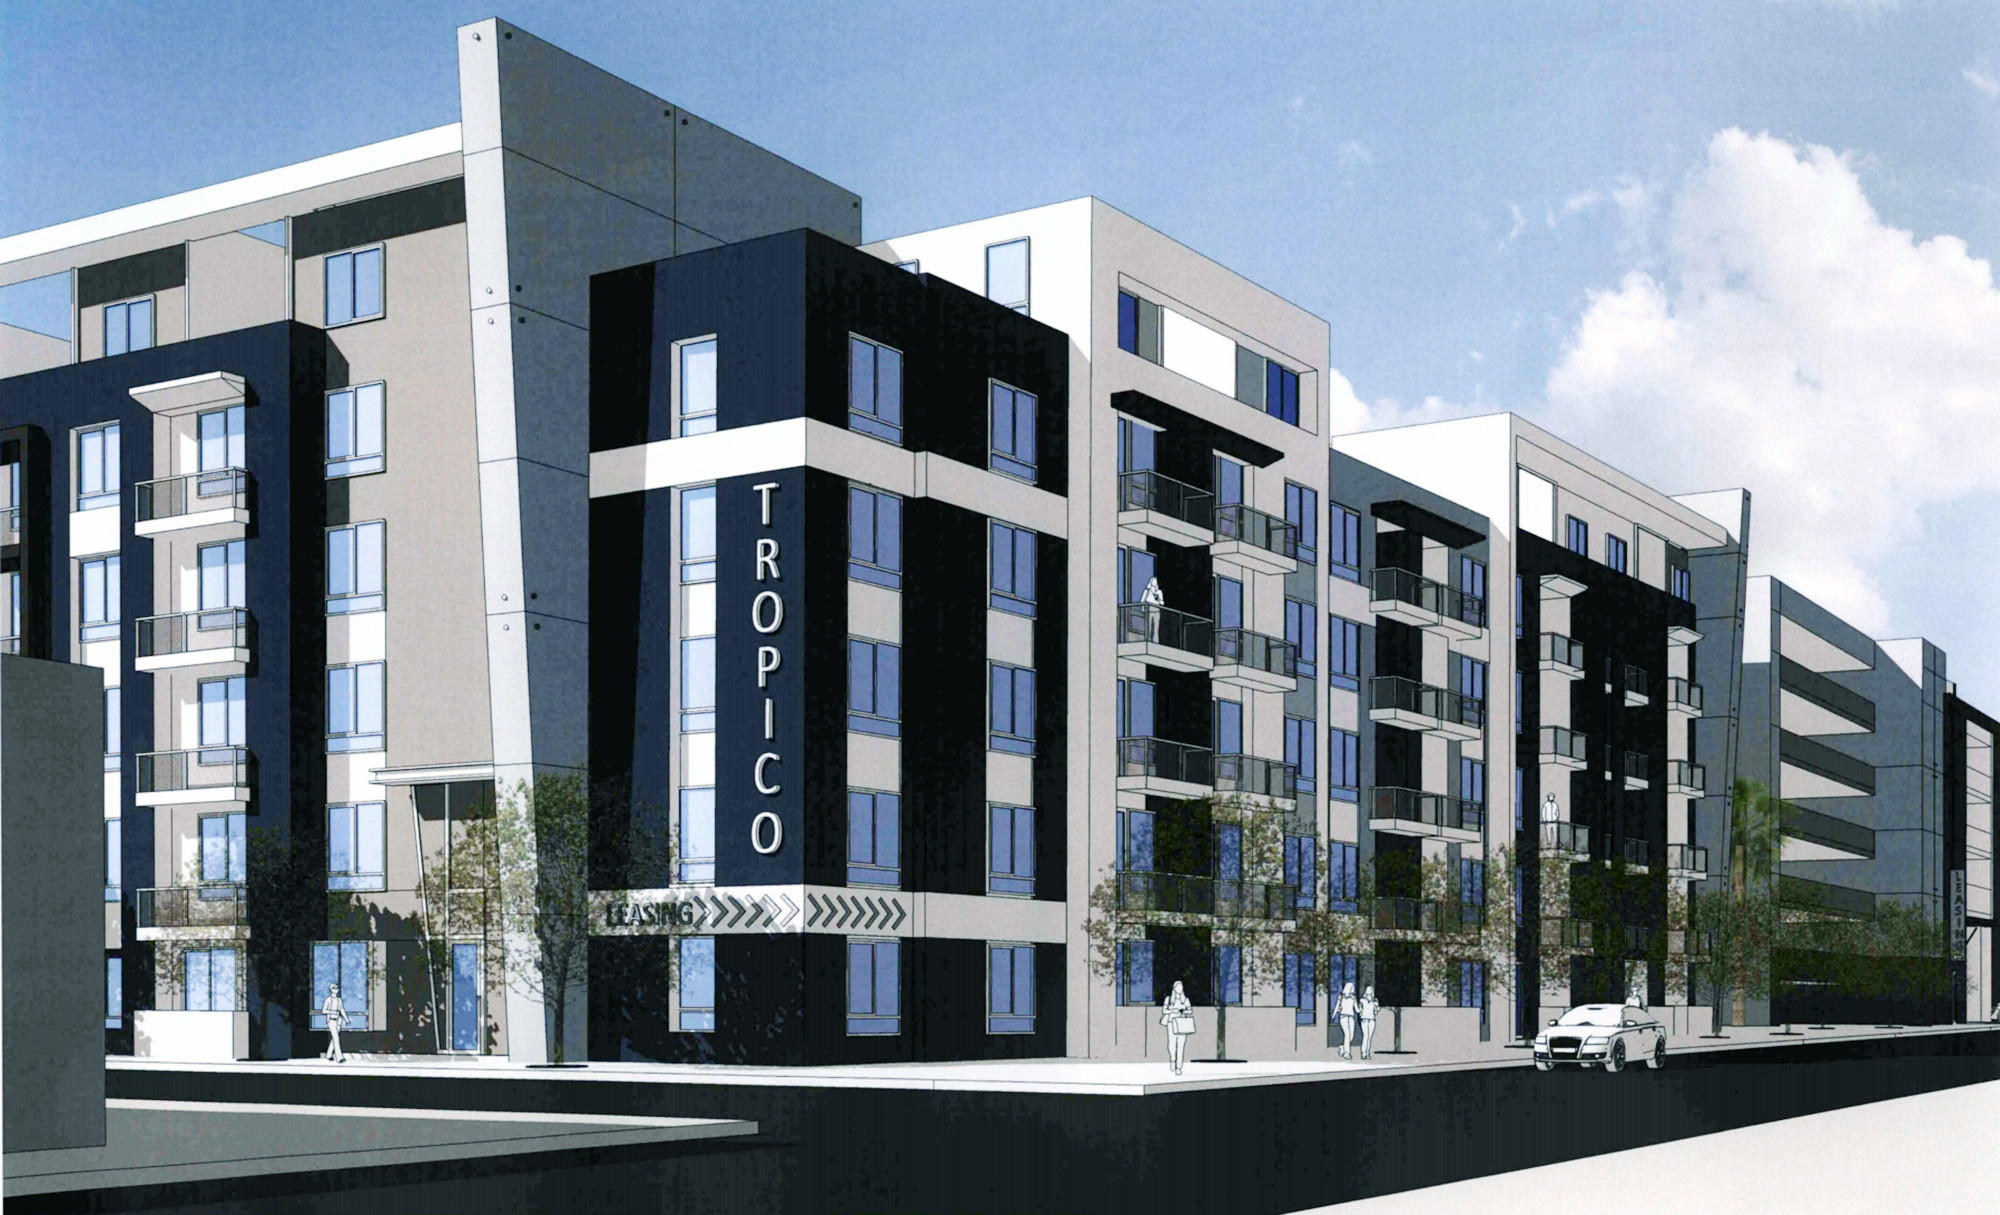 An architect's rendering of the Tropico Apartments project on Los Feliz Road.